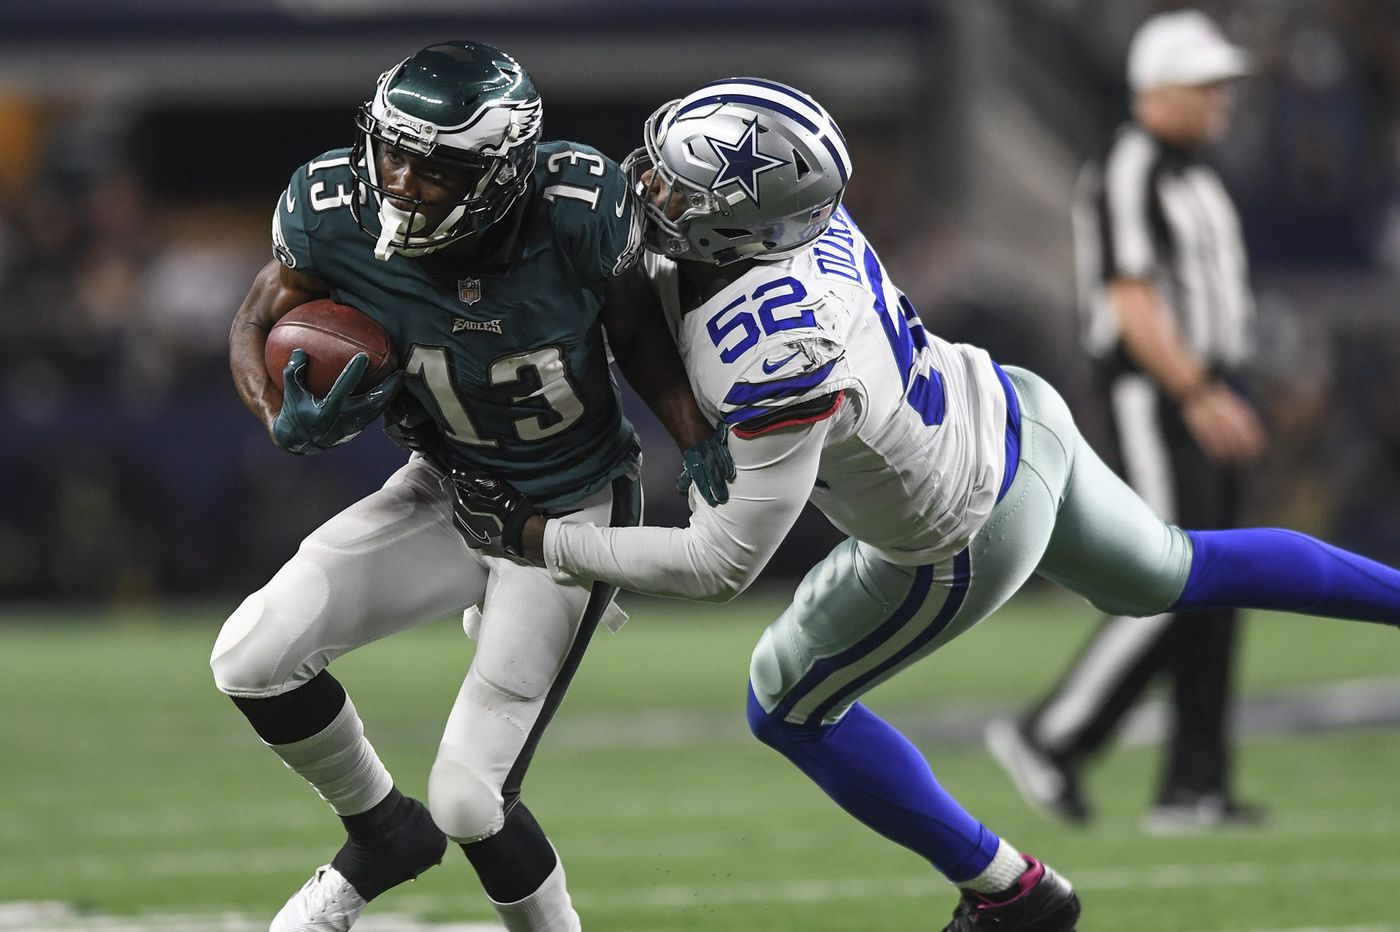 2018 Eagles season: Our writers make their game-by-game predictions